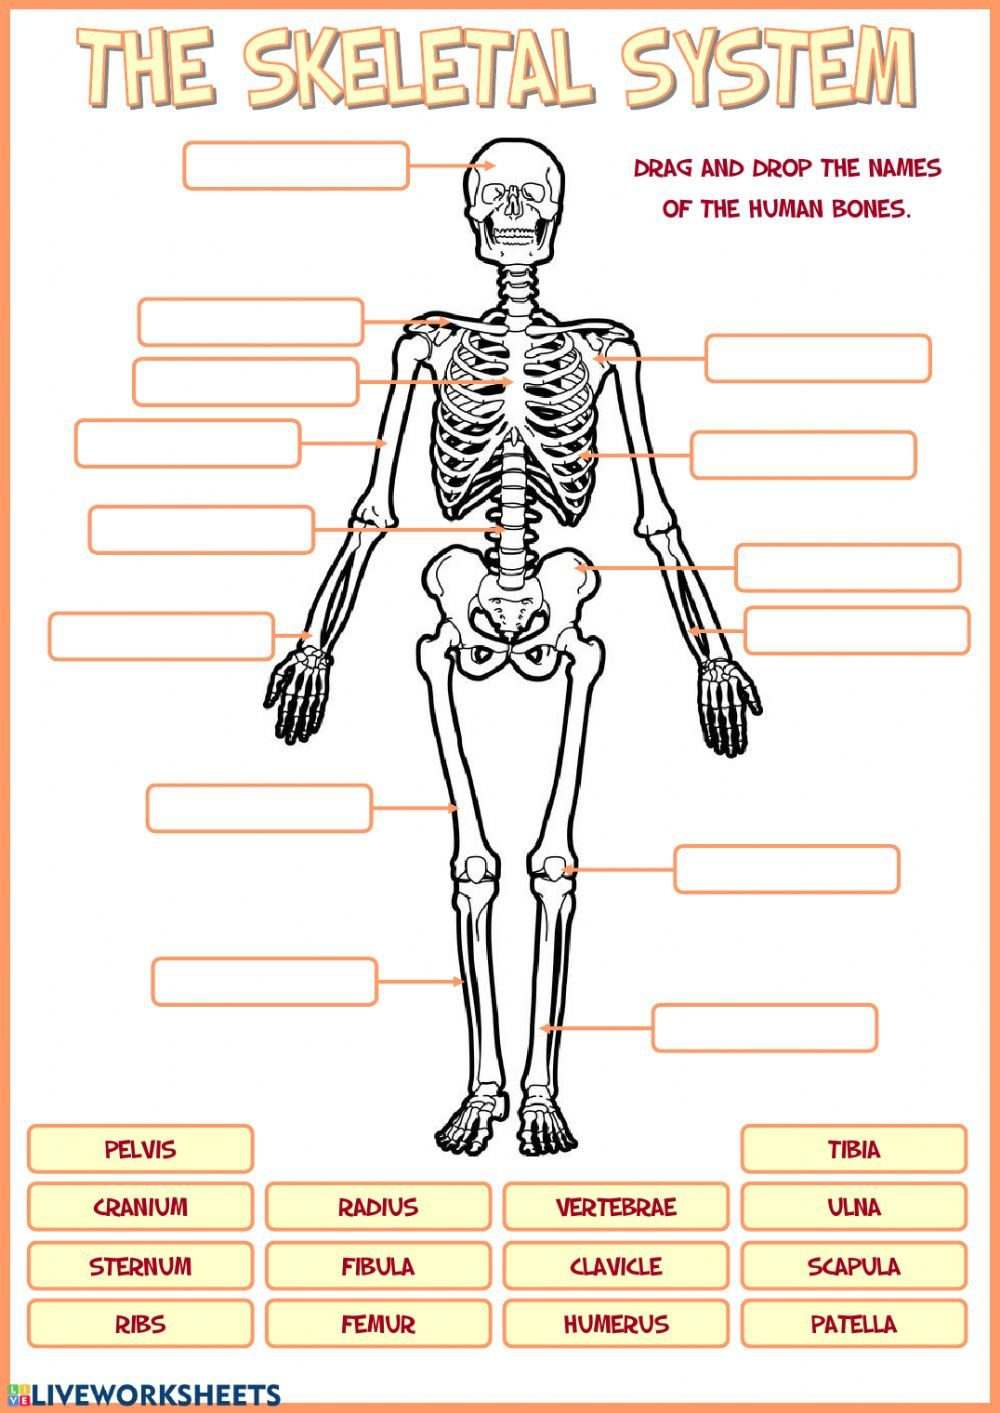 Skeletal System Interactive And Downloadable Worksheet You Can Do The Exercises Online Or Downl Skeletal System Worksheet Skeletal System Kids Skeletal System